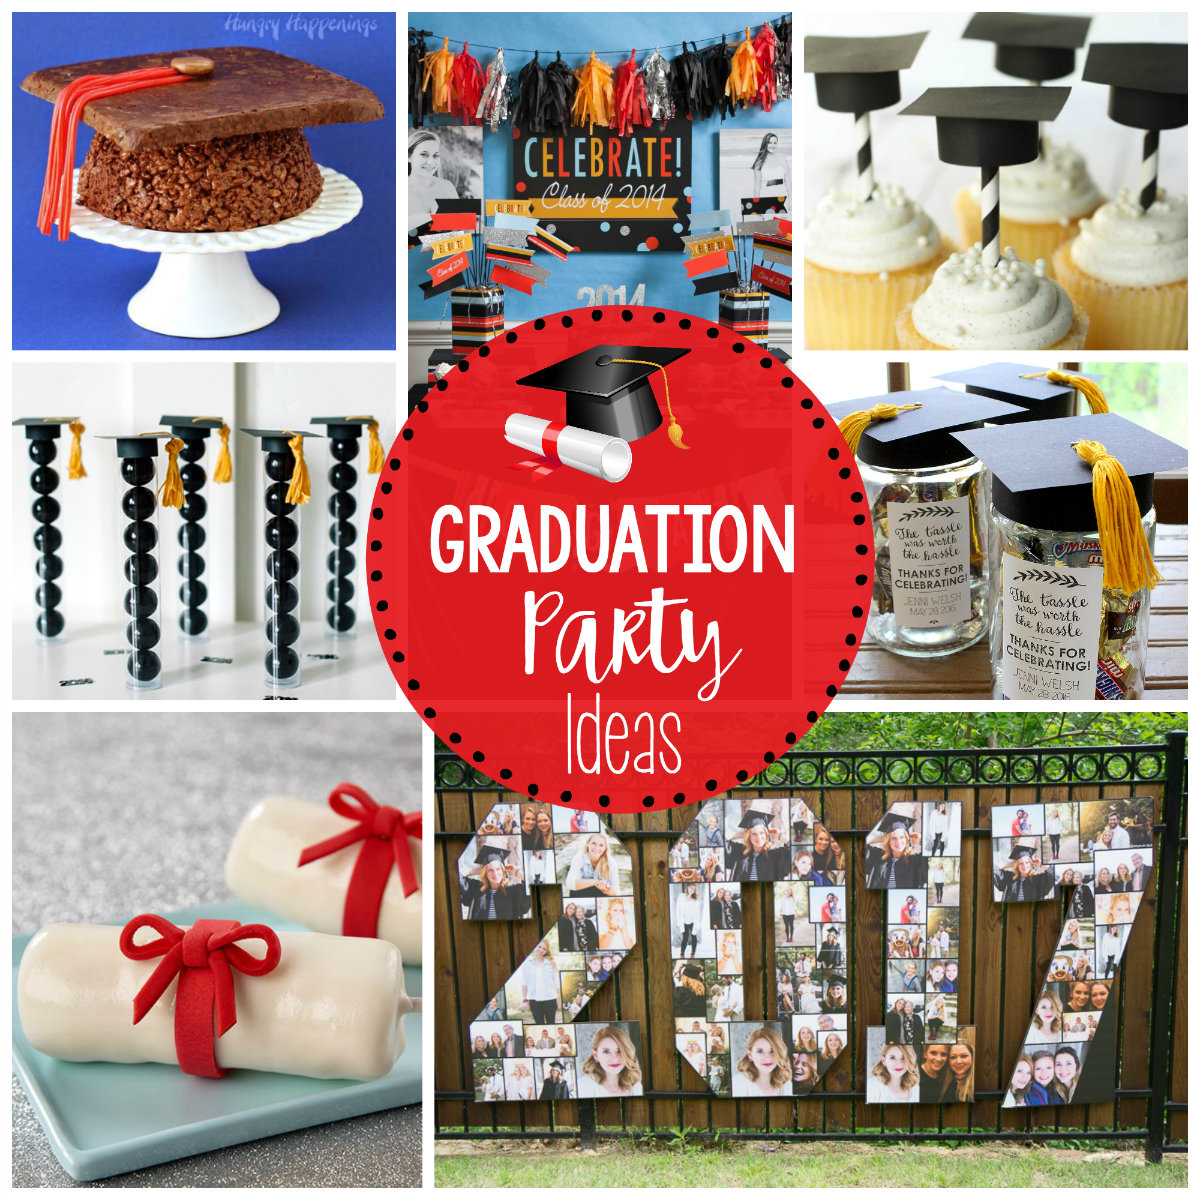 25 Fun Graduation Party Ideas - Fun-Squared